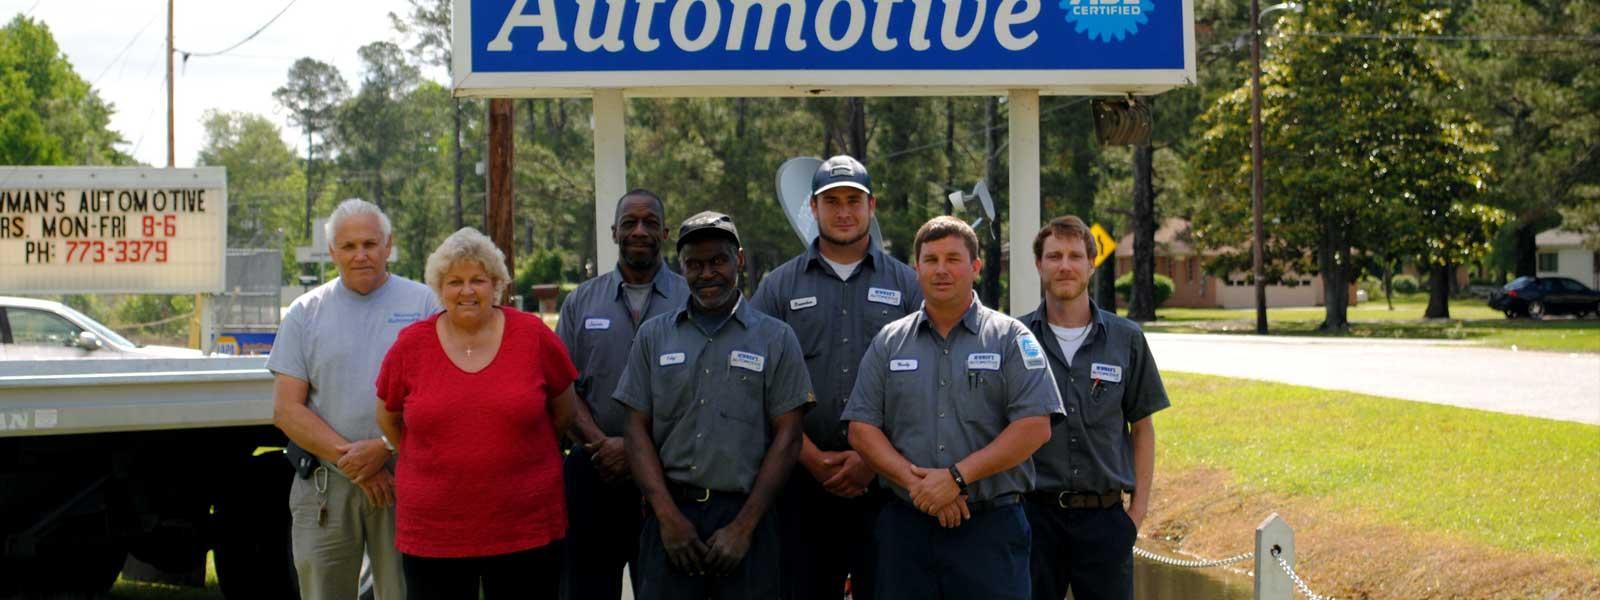 Team and Auto Mechanics at Newman's Automotive